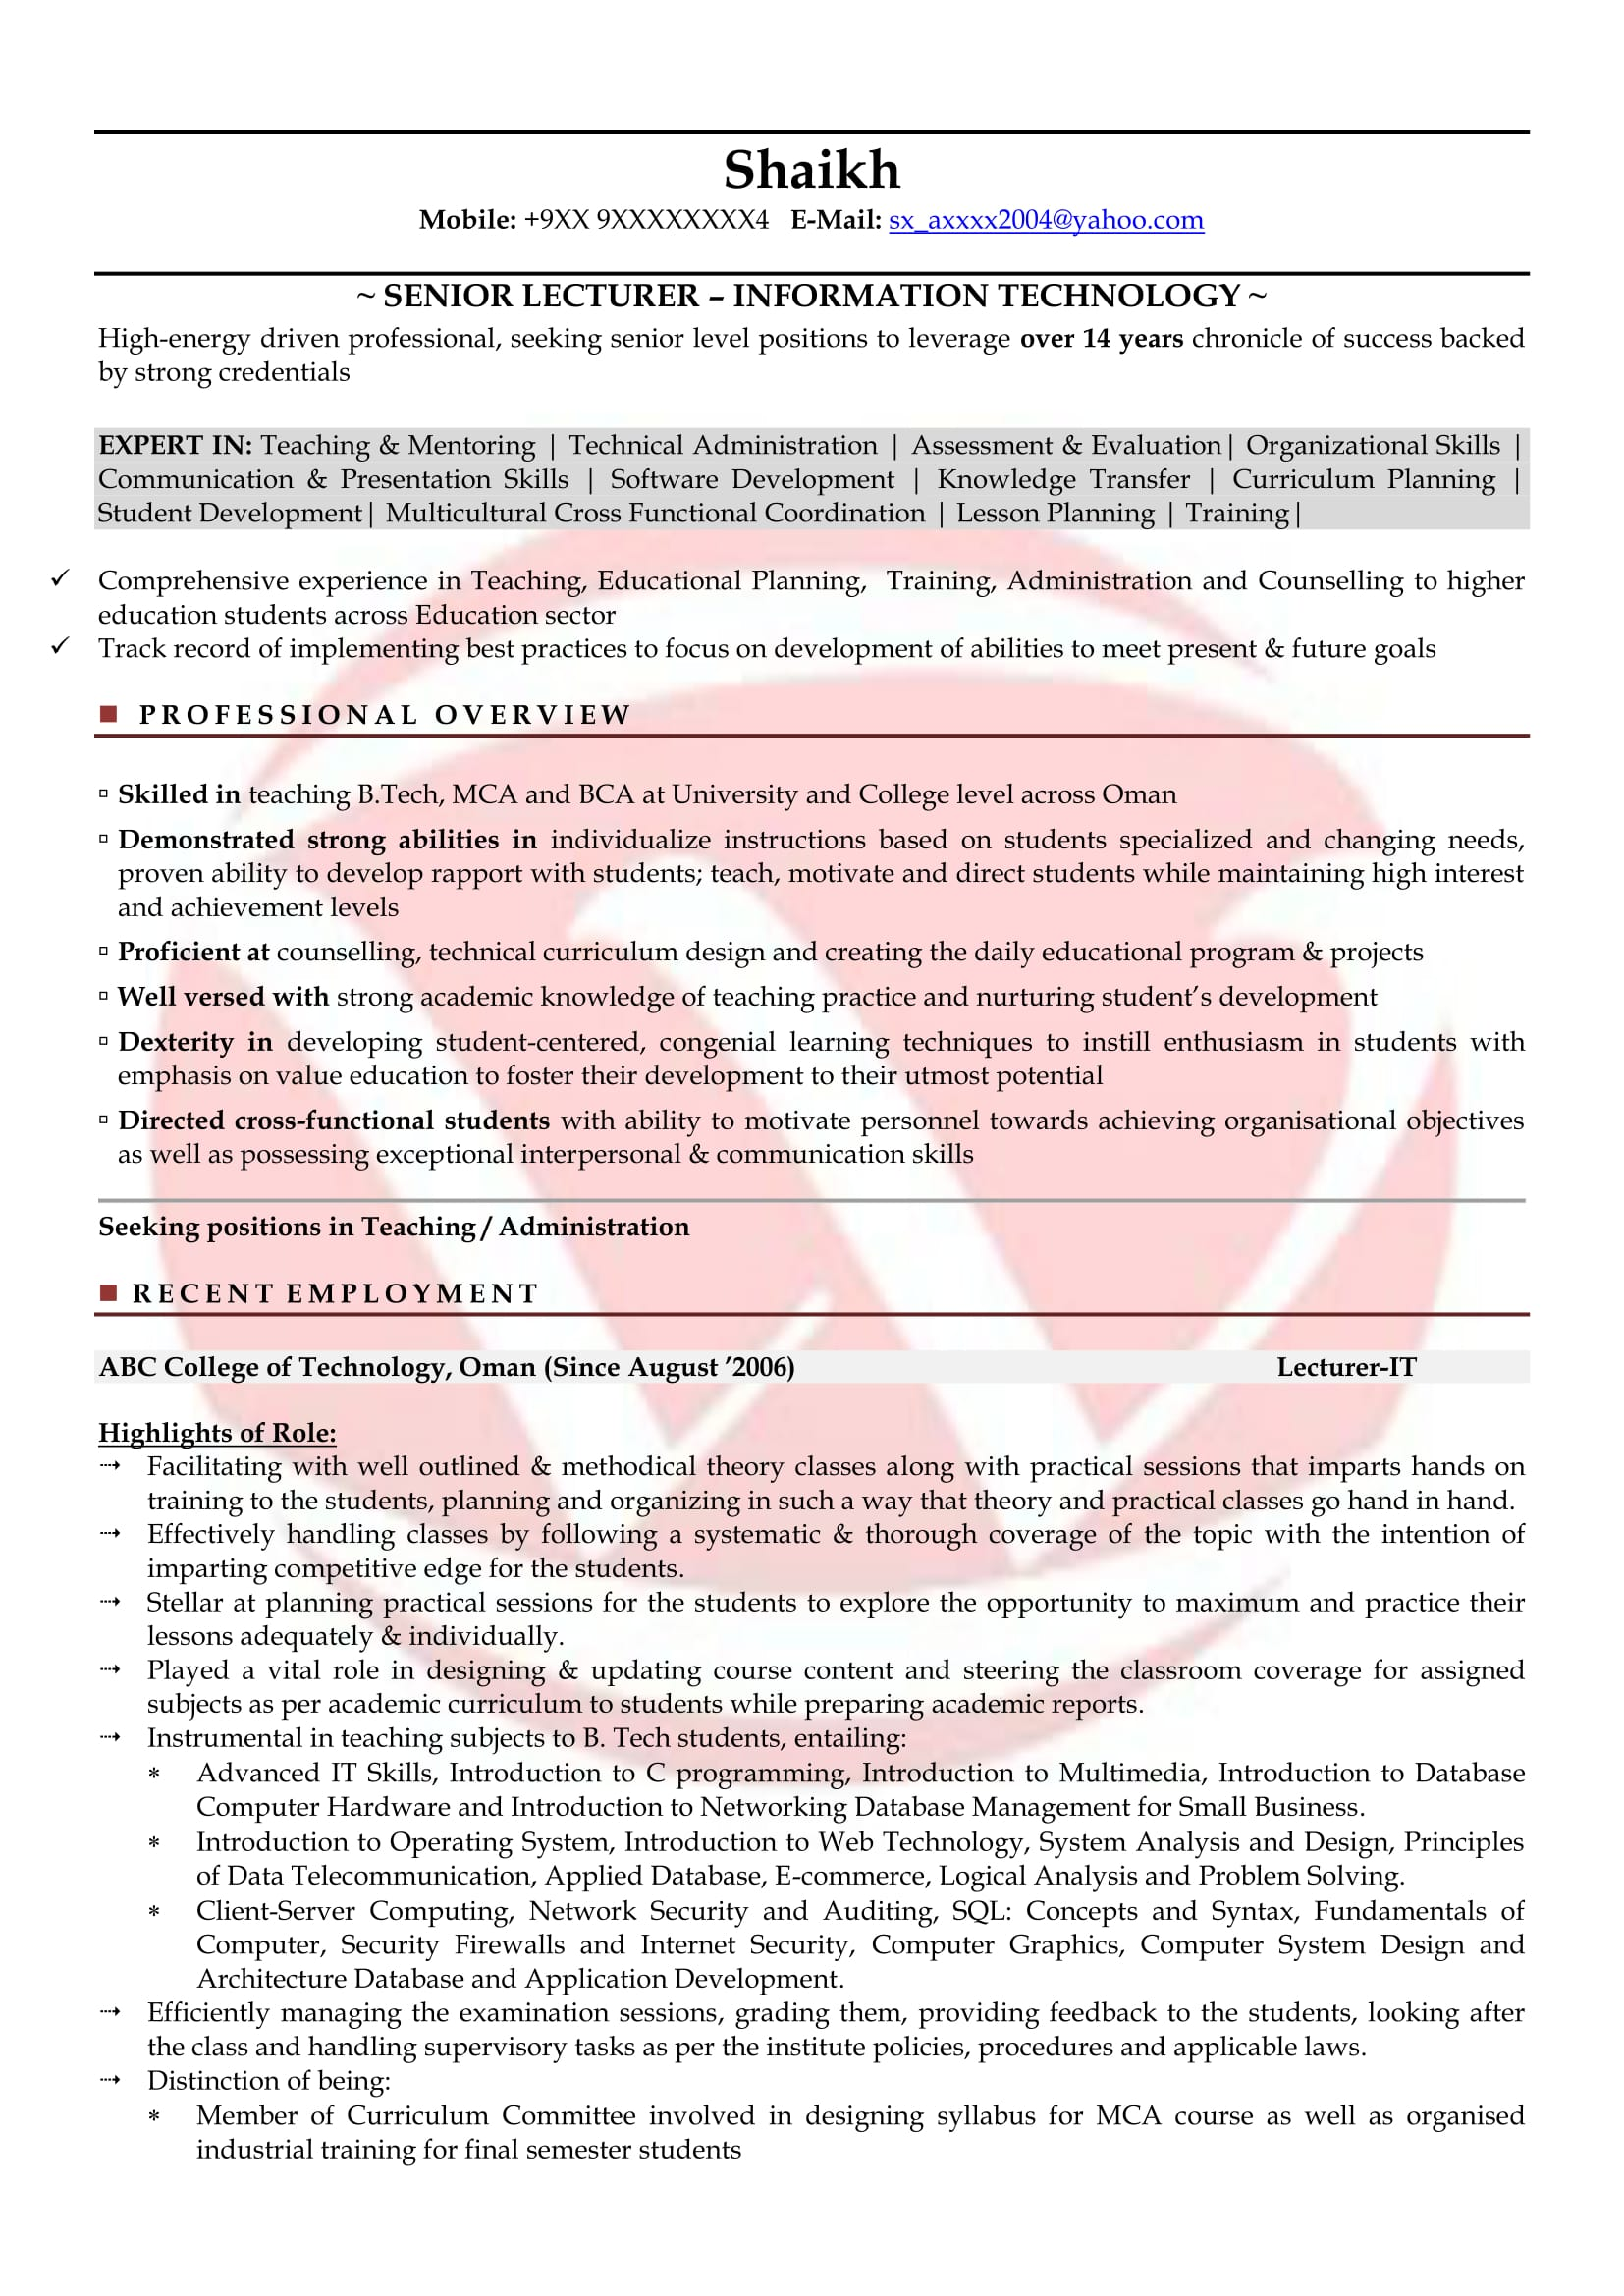 Lecturer Sample Resumes Download Resume Format Templates